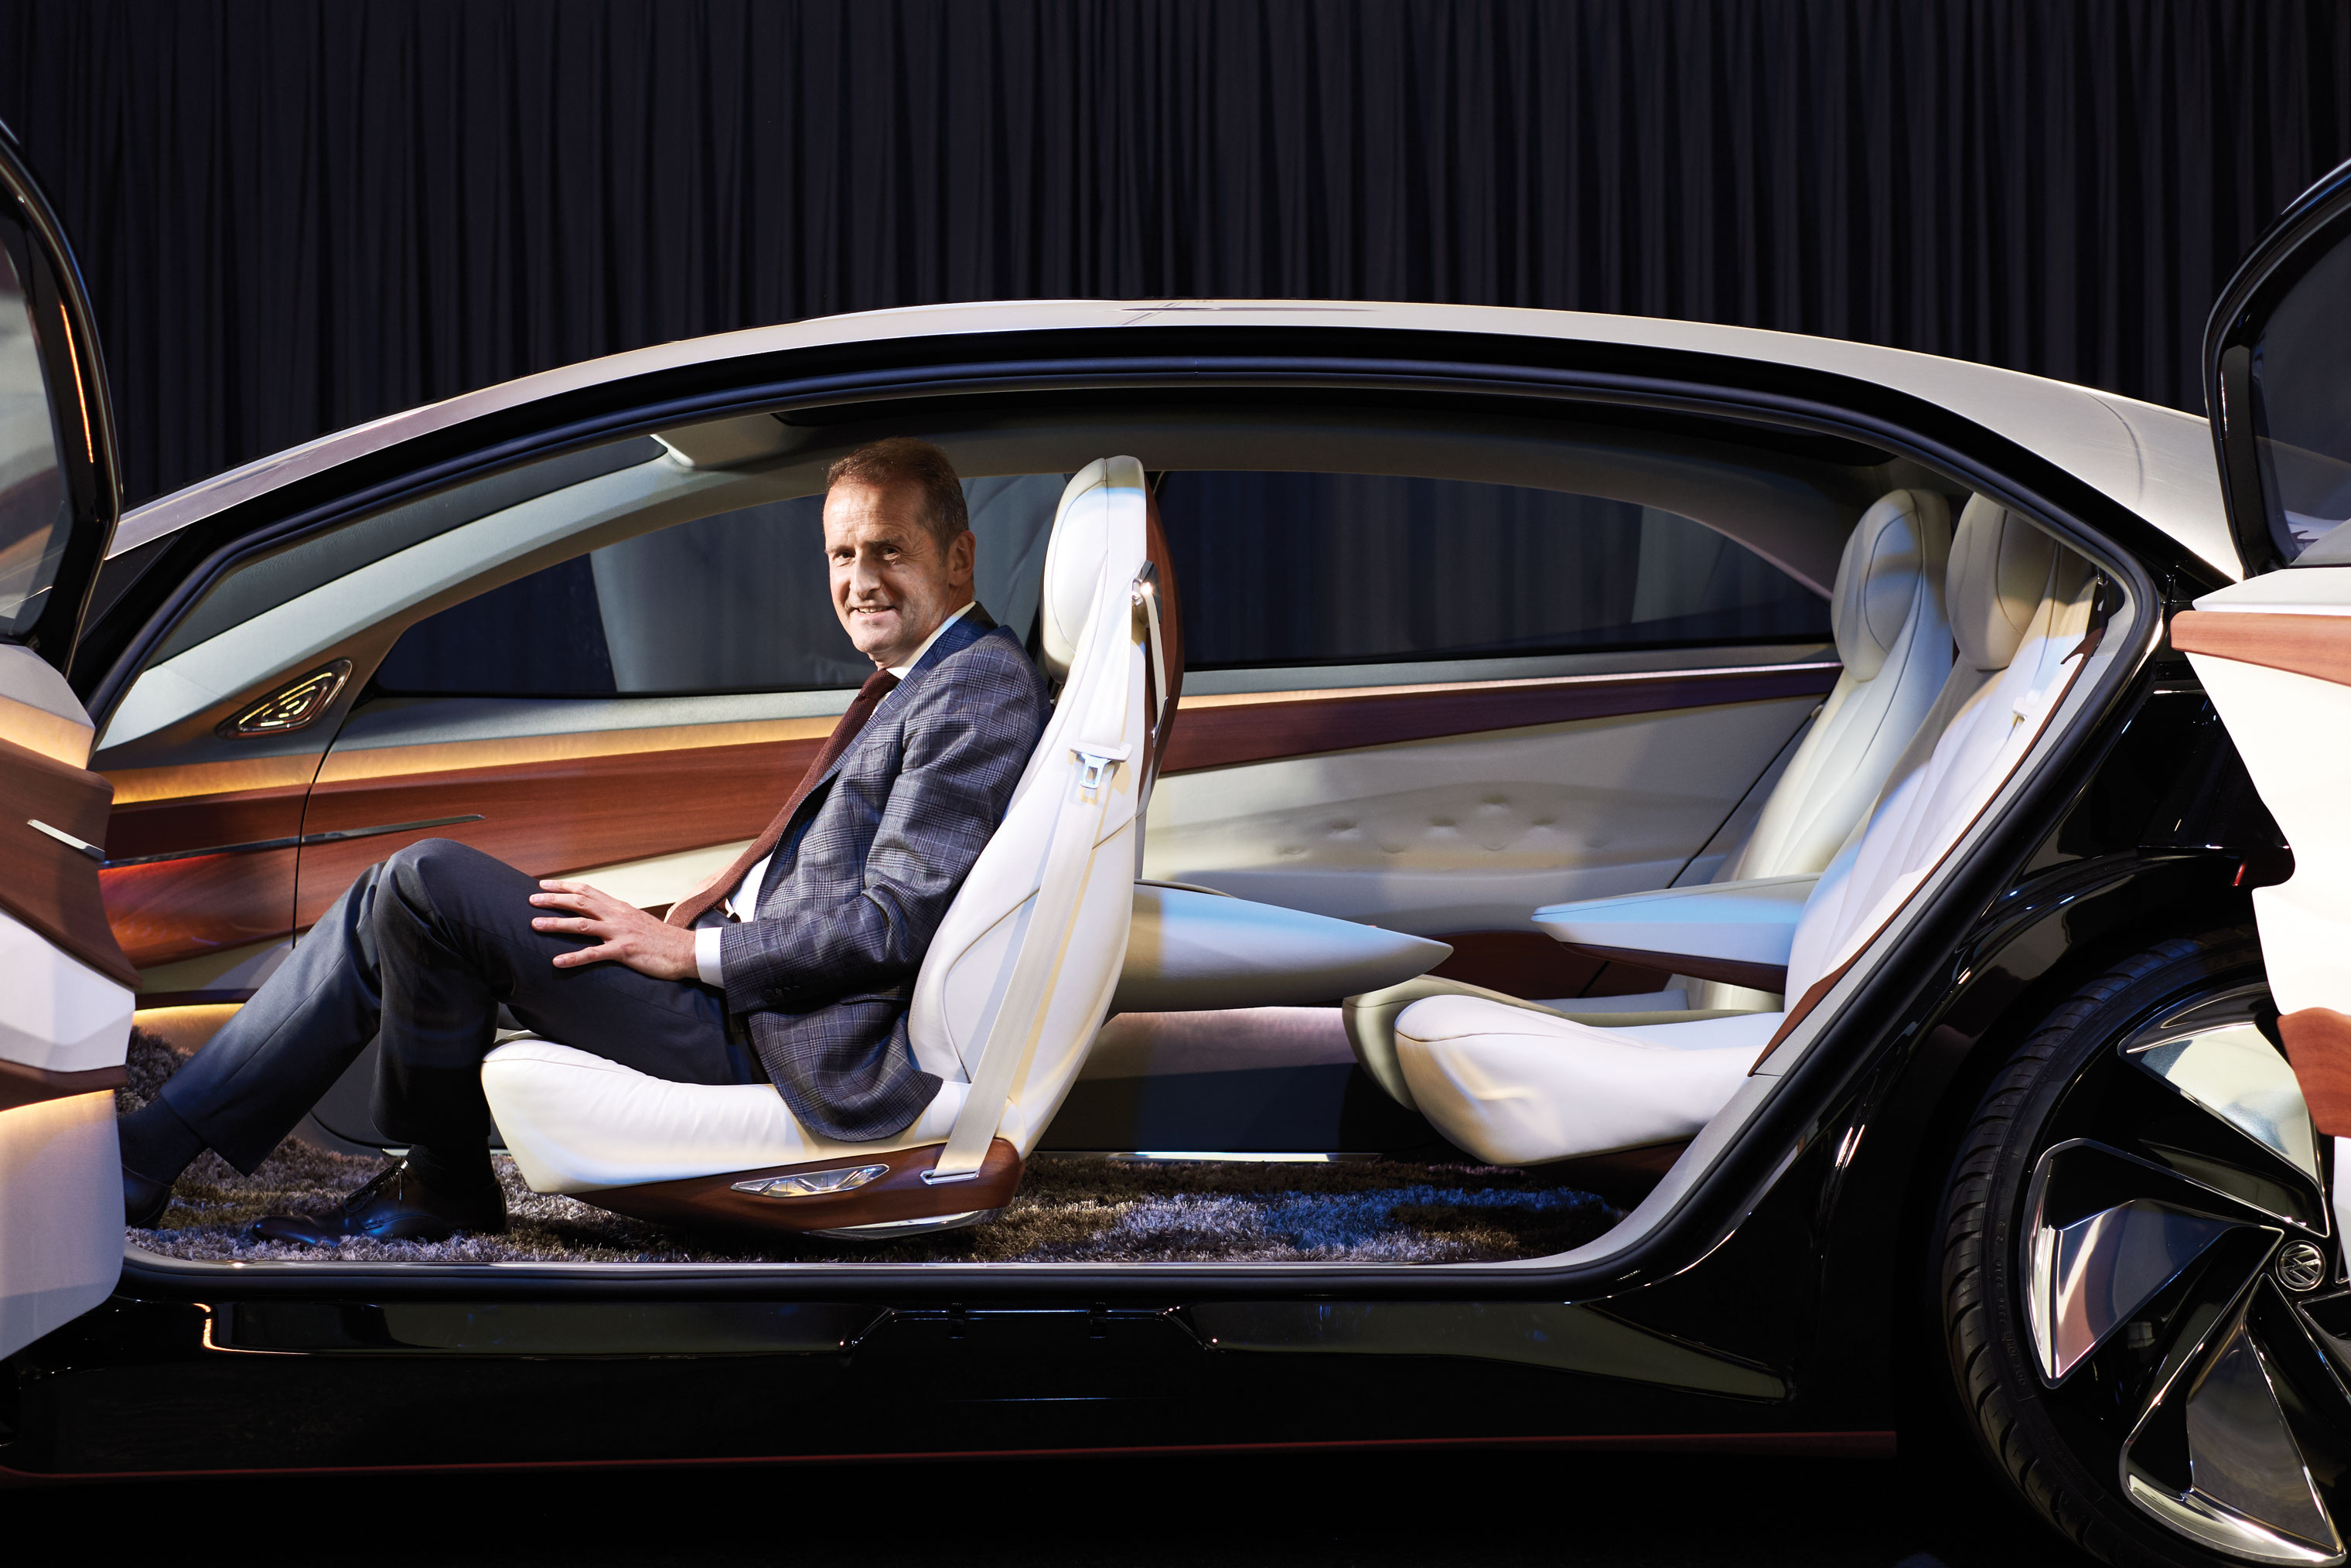 DRIVING CHANGE: New Volkswagen CEO Herbert Diess, here in a self-driving concept car at VW's innovation center, is investing heavily in new technology